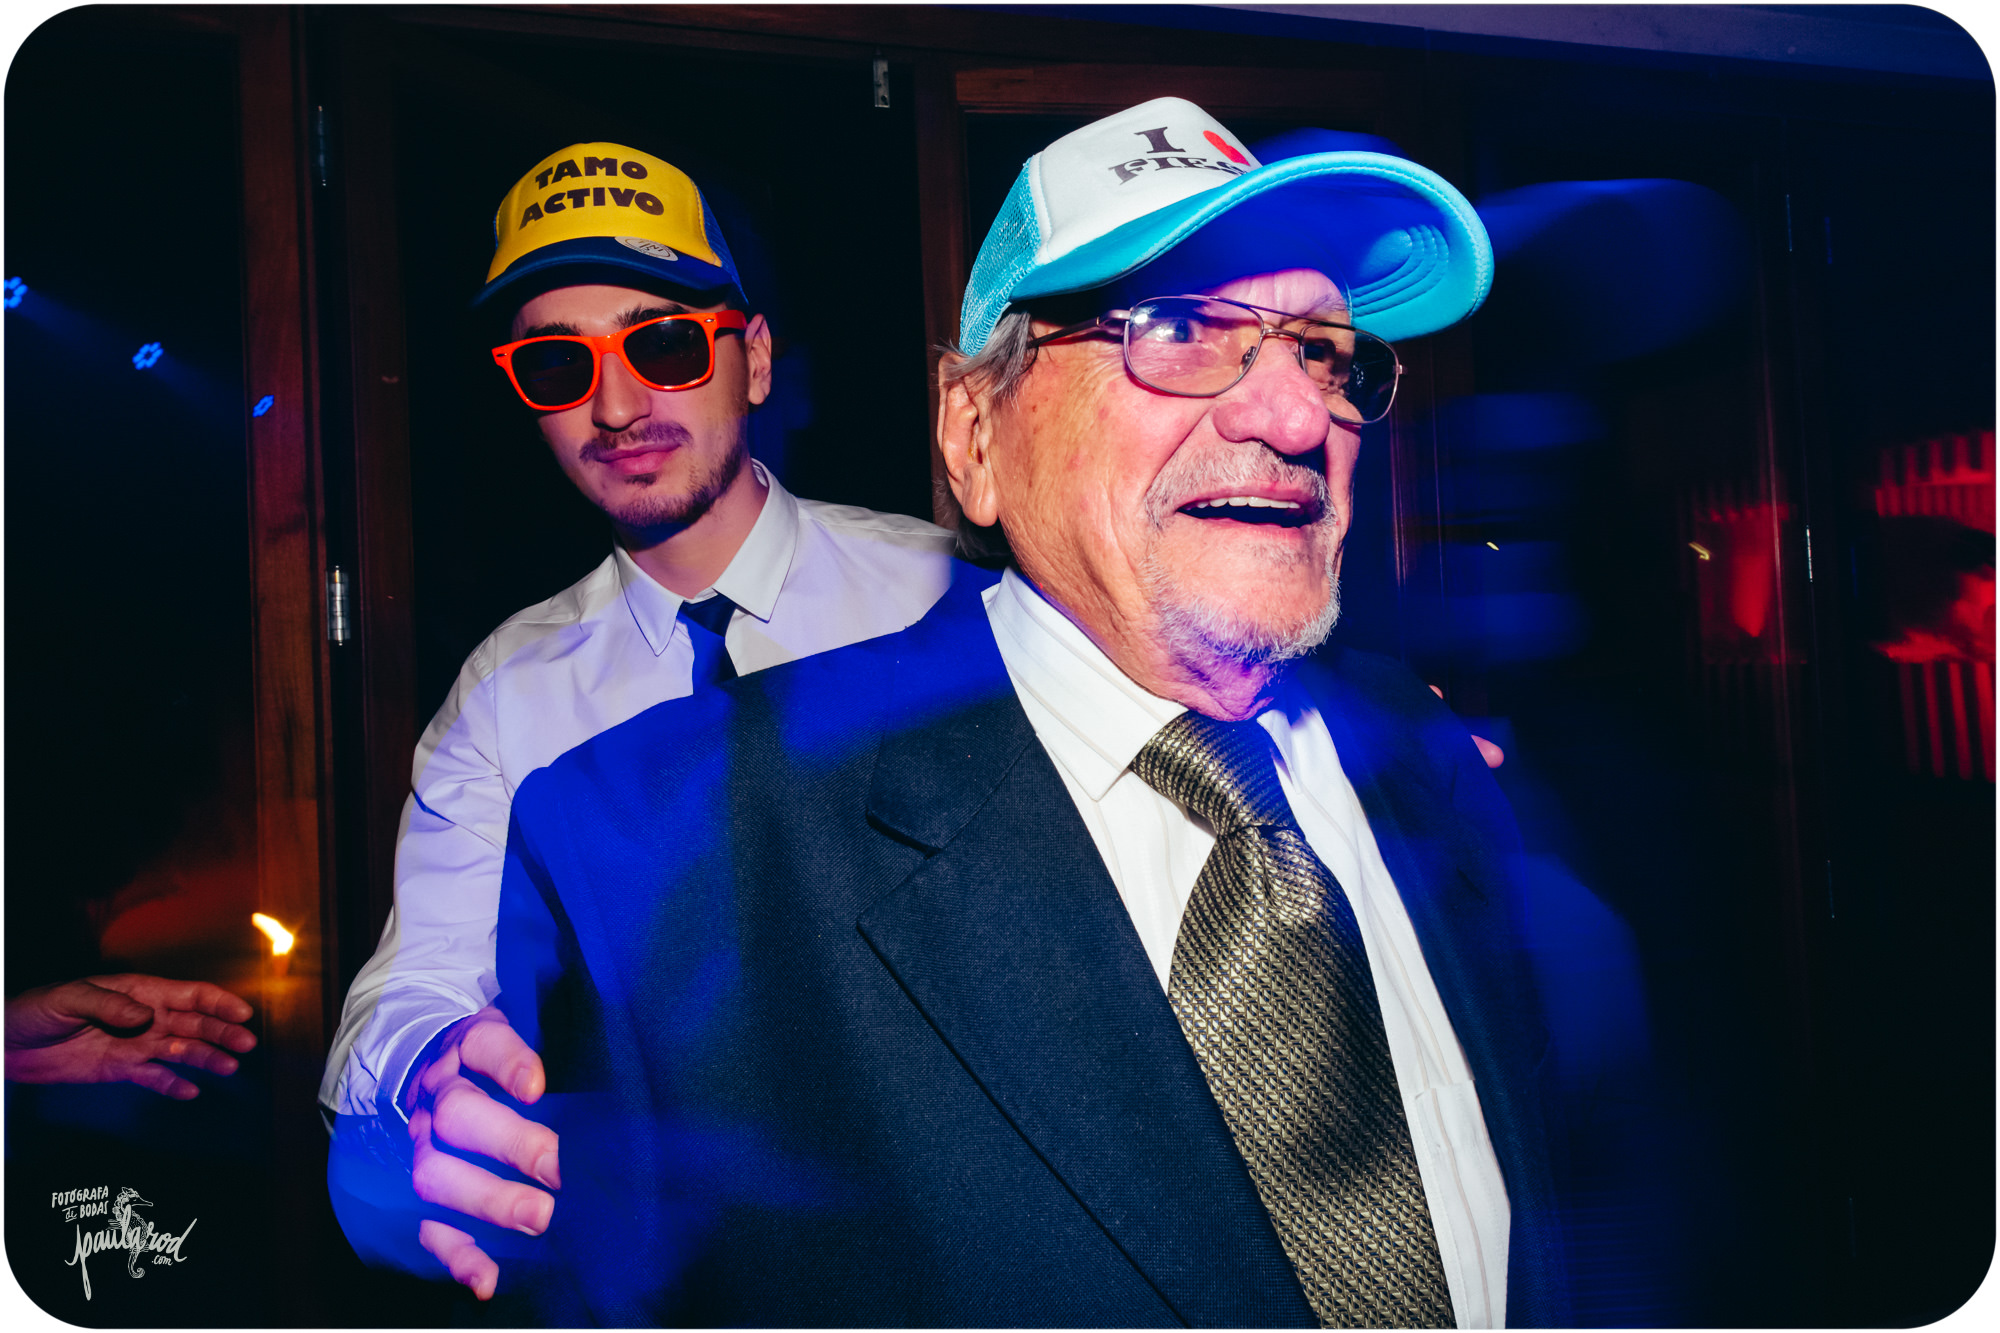 fotografia_documental_para_quinces_en_haedo-2 (2).jpg